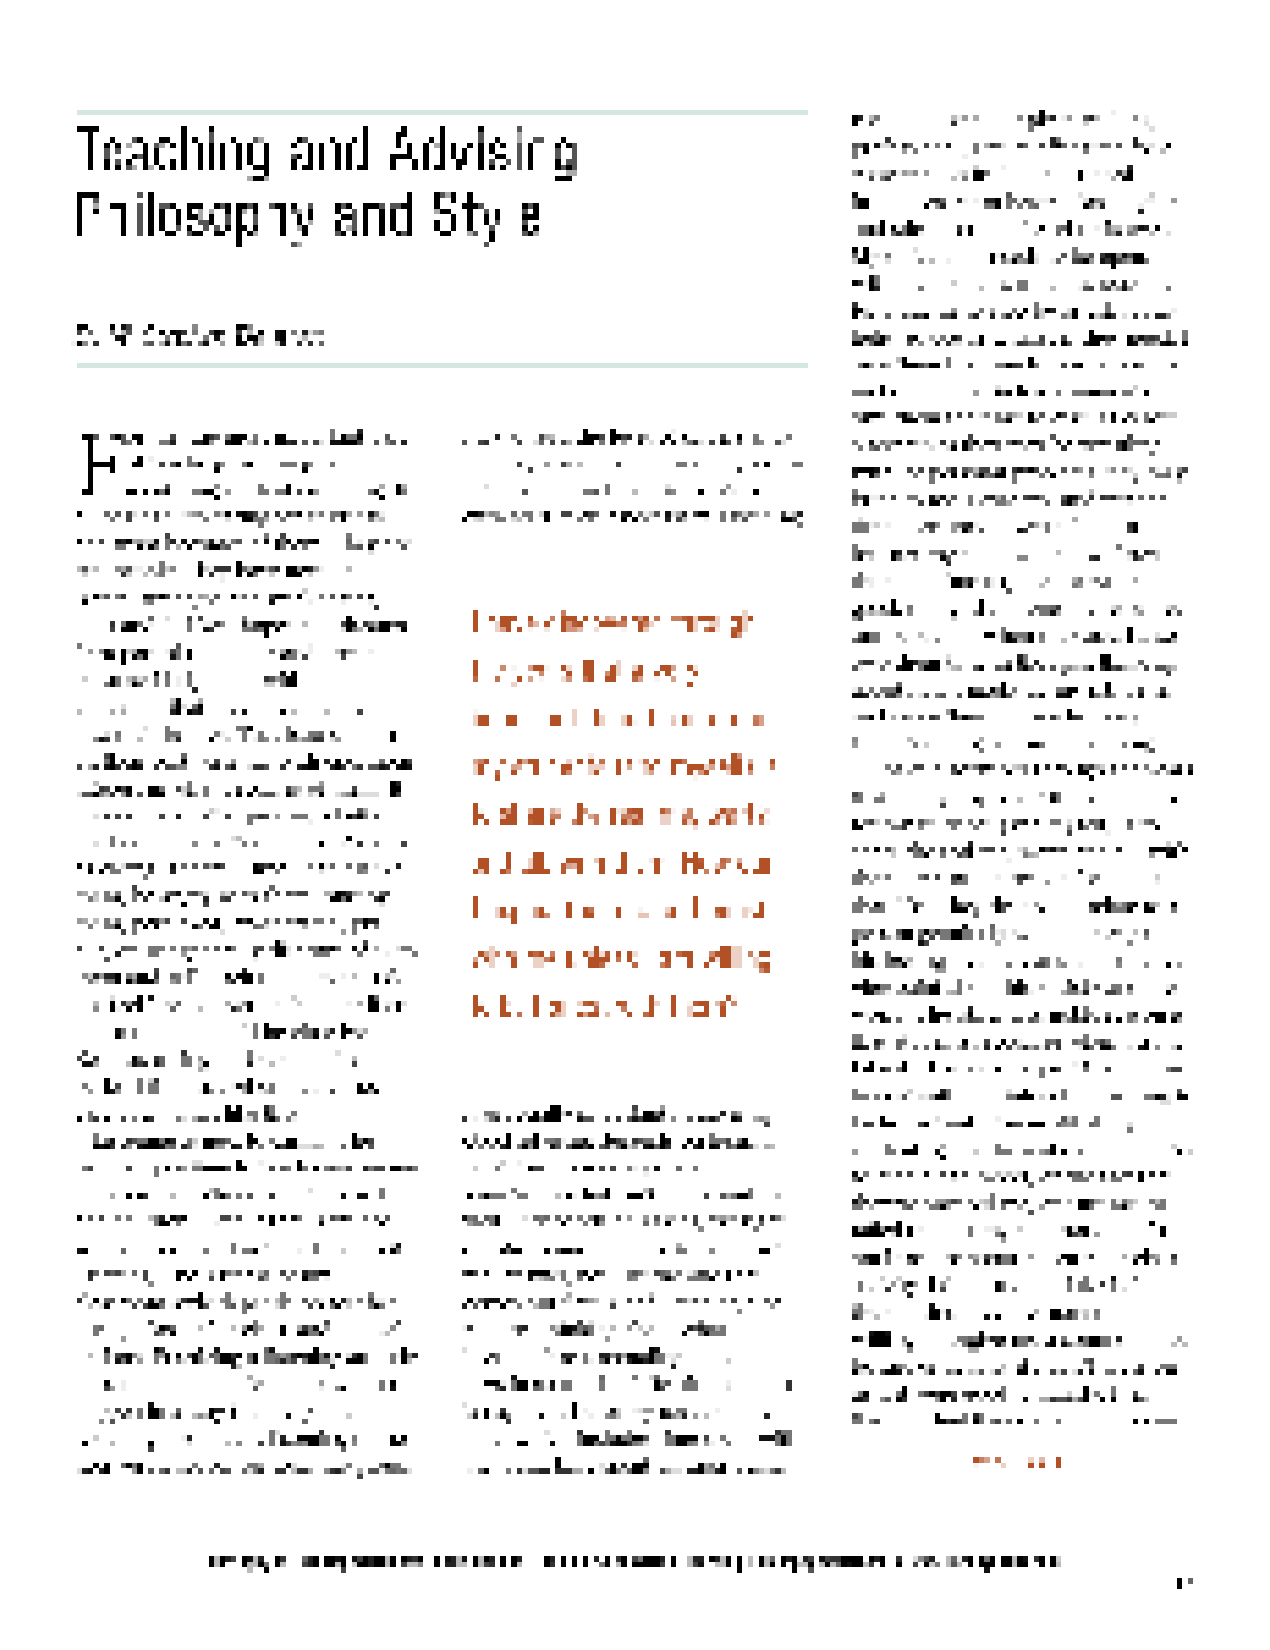 an essay on the theoretical underpinnings of my teaching philosophy Bagley's philosophy of education argued that students should learn something in addition to the process of thinking the philosophy also asserted that other philosophies over-emphasized the process of learning instead of content knowledge in the curriculum (null, 2003.